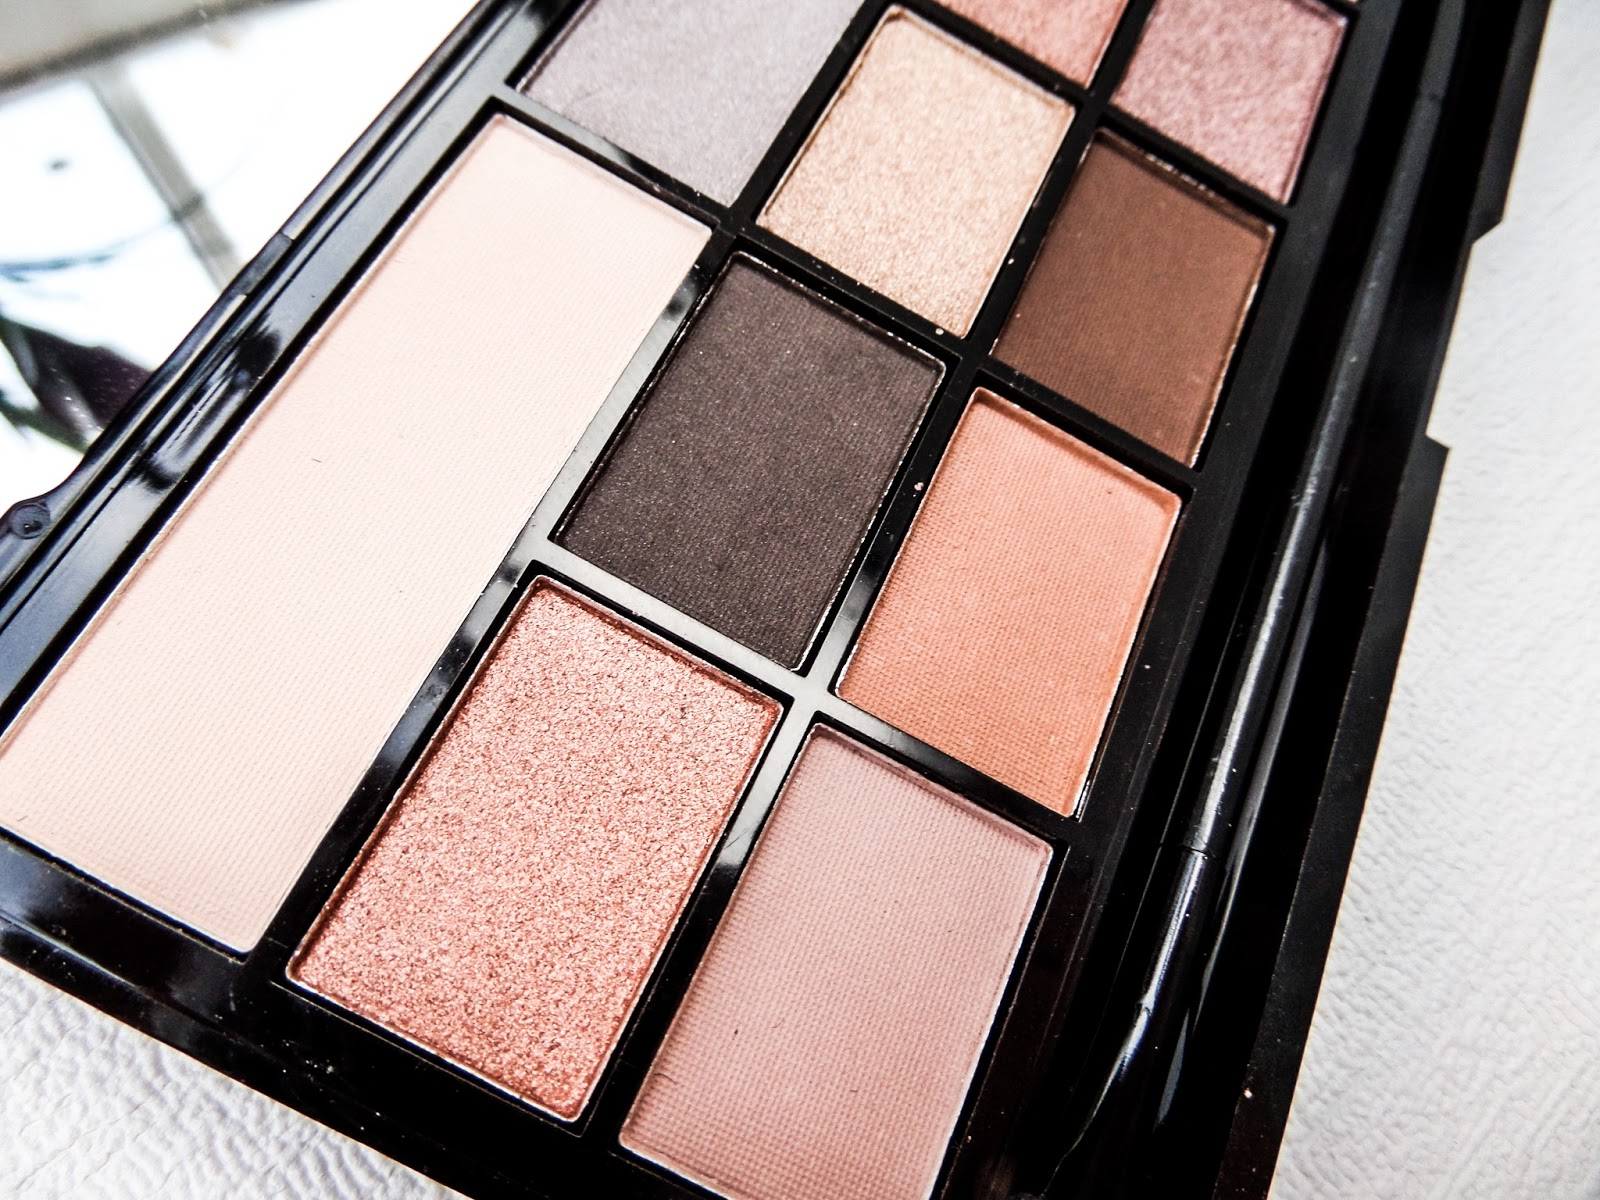 The Makeup Revolution I ♡ Makeup Naked Underneath Palette Review